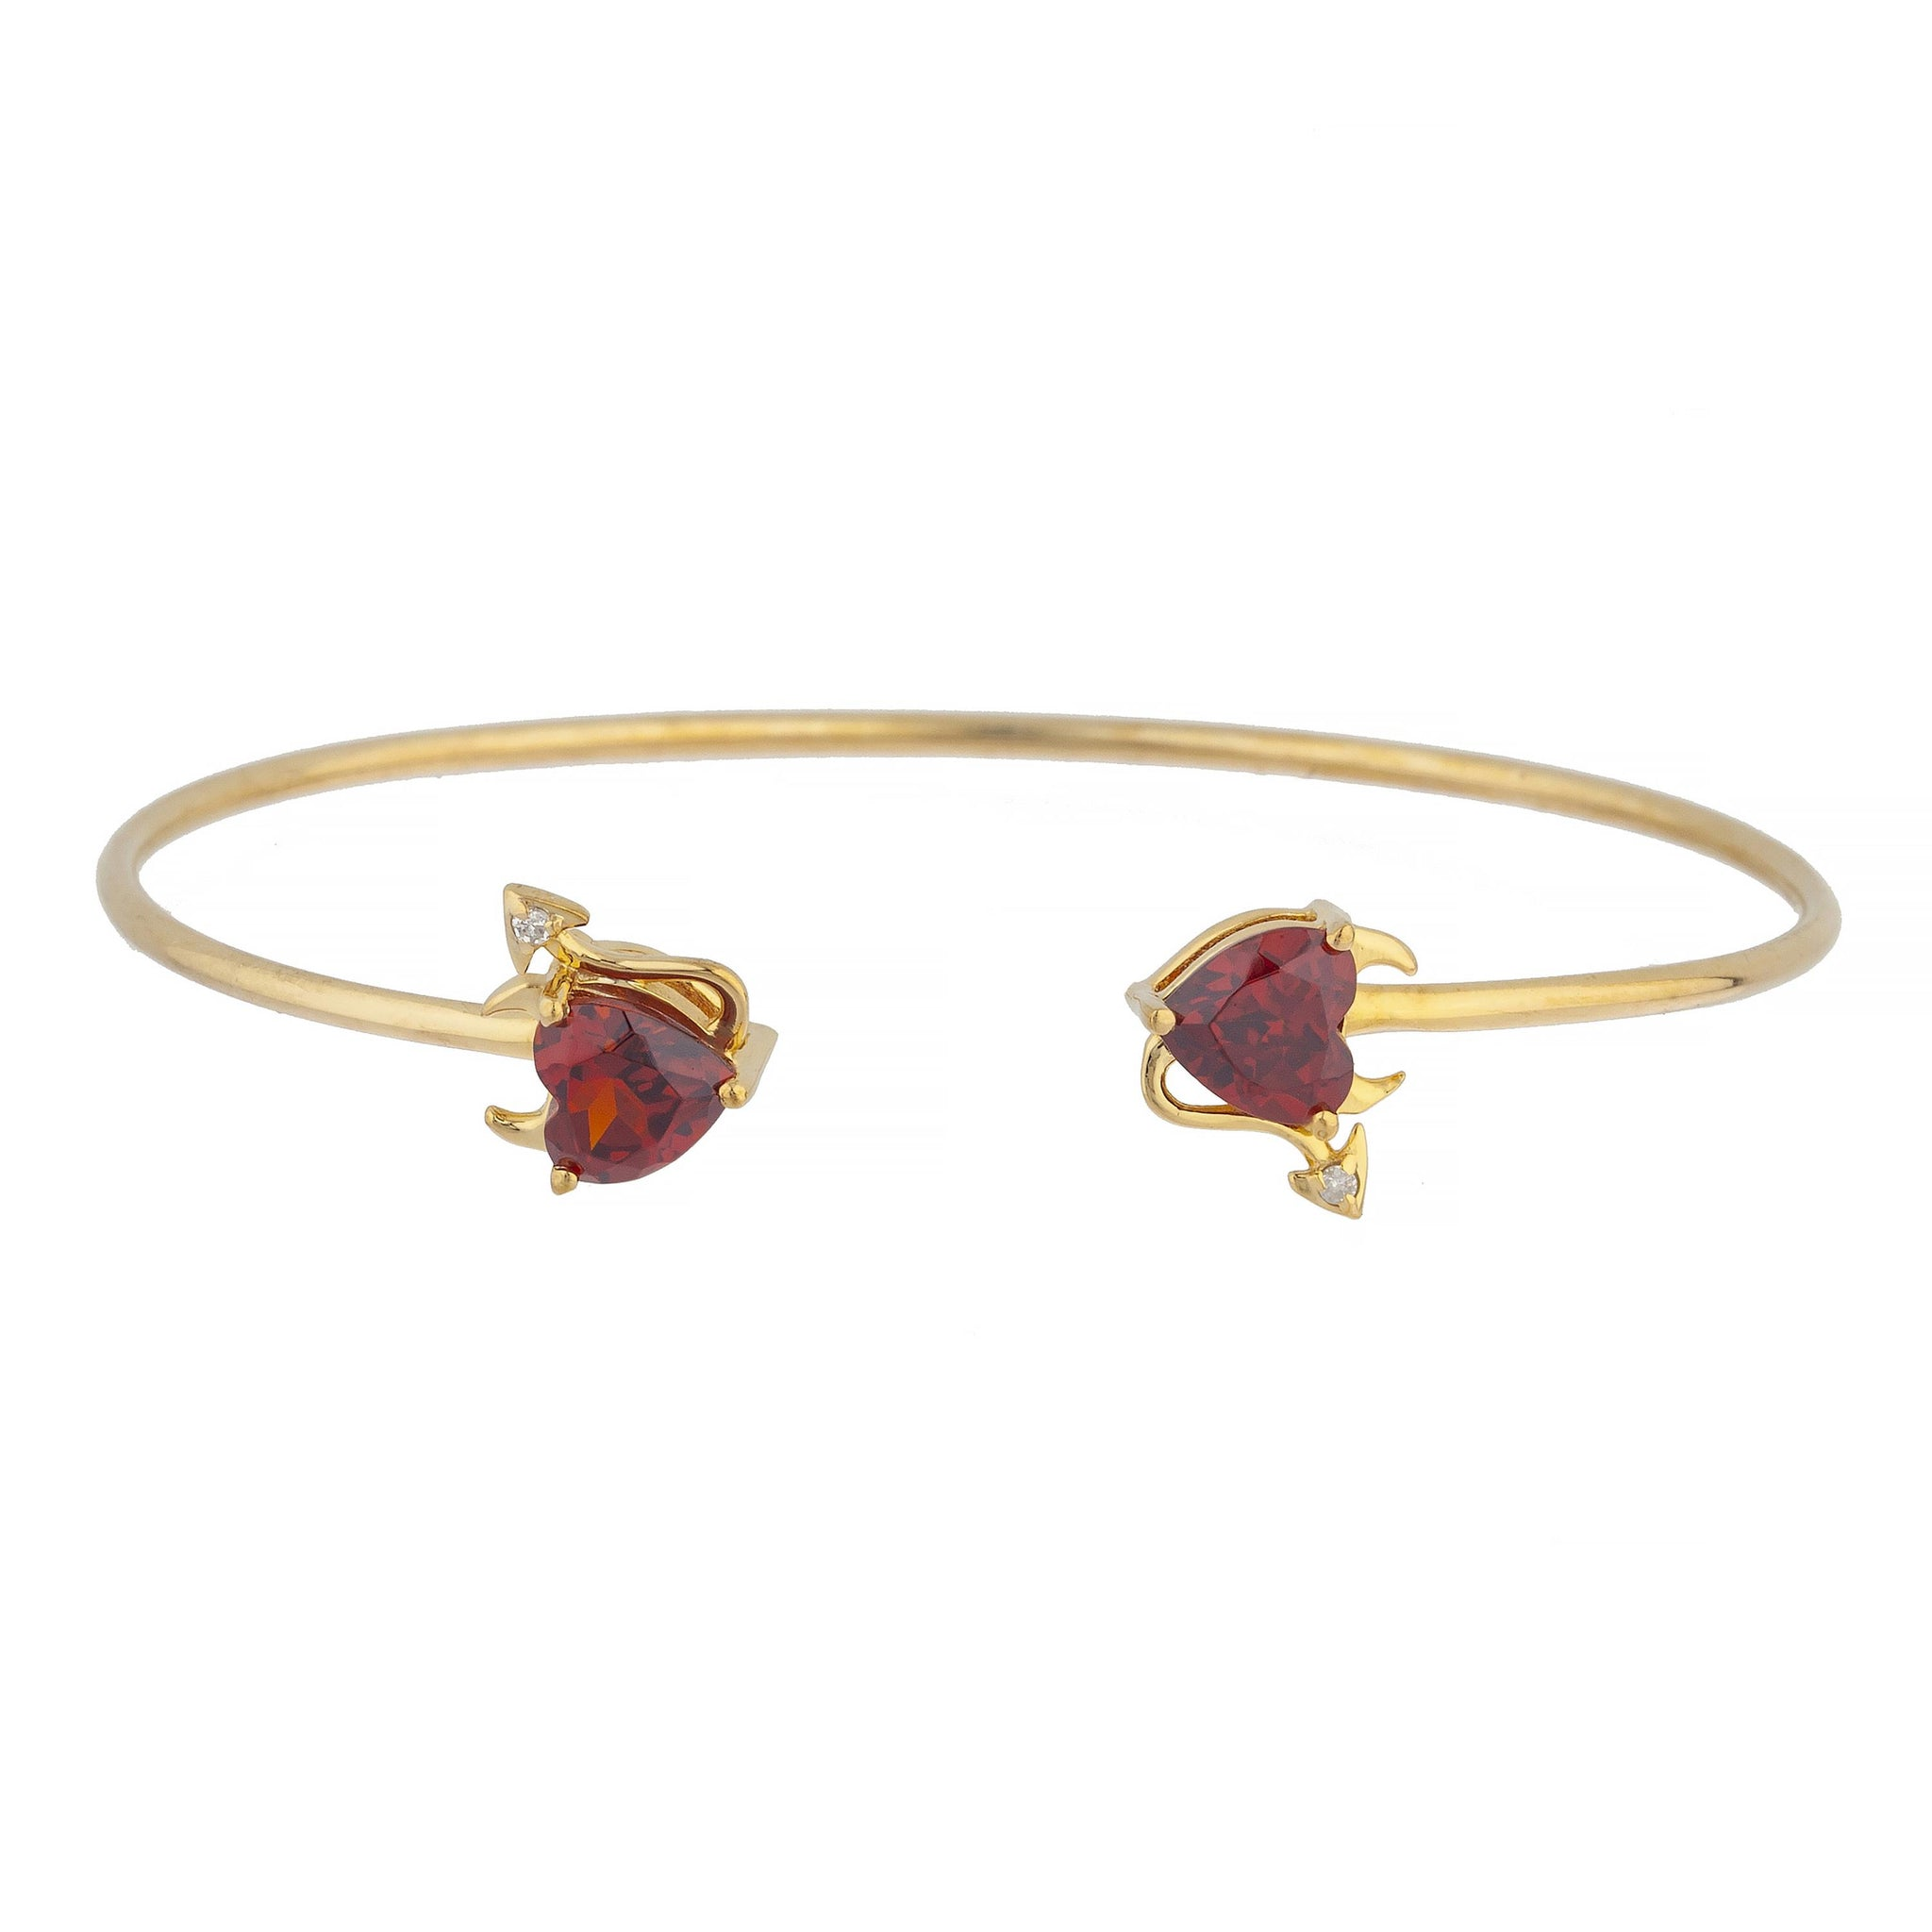 Garnet & Diamond Devil Heart Bangle Bracelet 14Kt Yellow Gold Rose Gold Silver